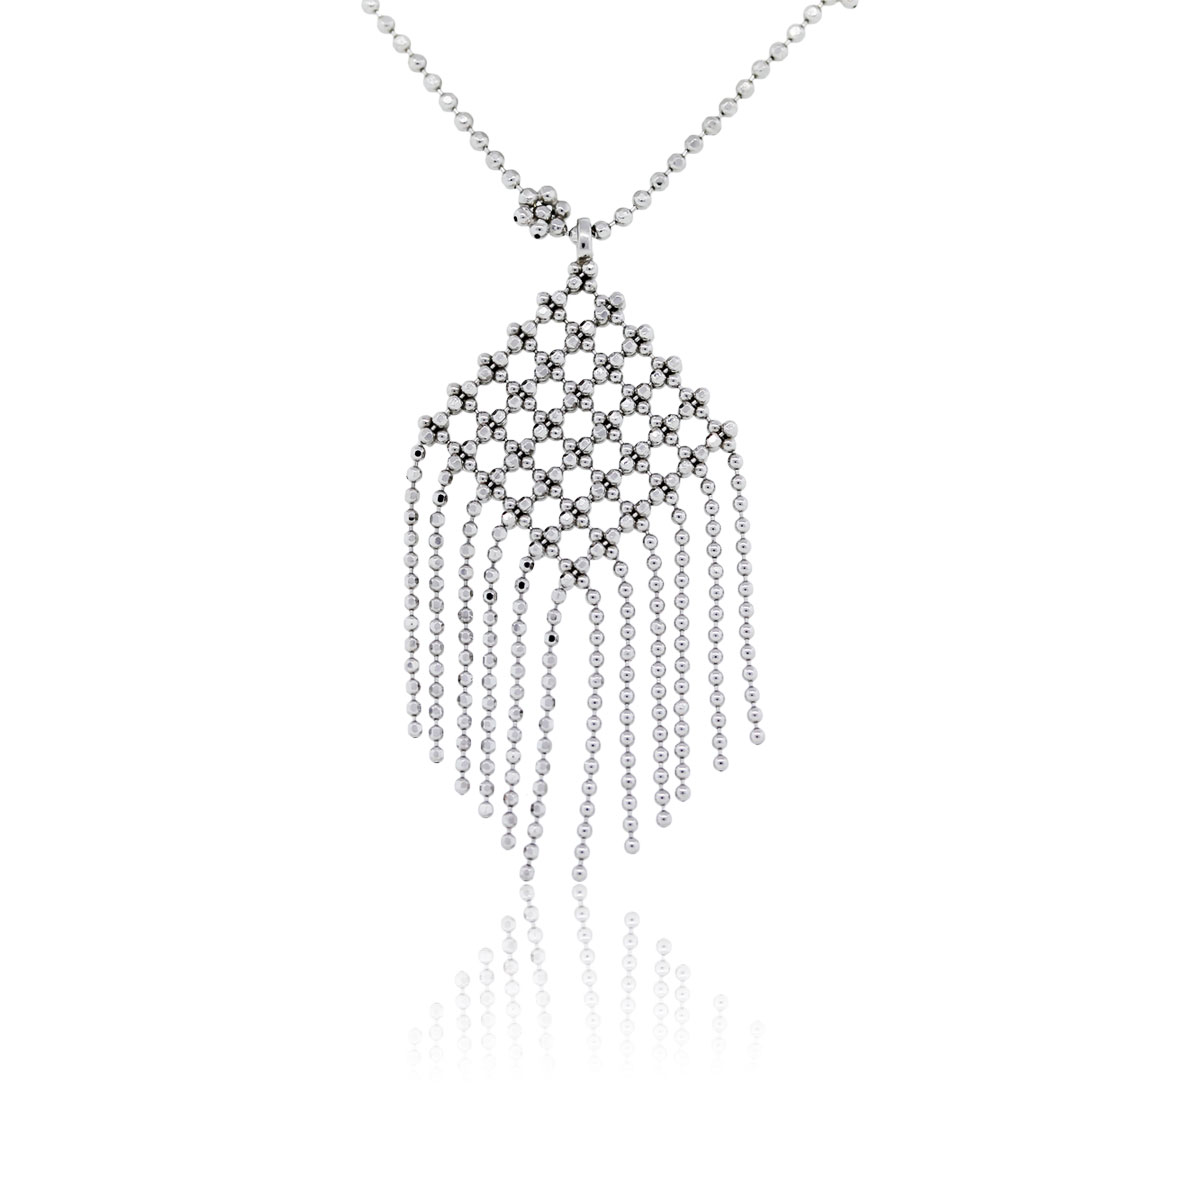 You are viewing this Tiffany & Co. 18k White Gold Fringe Flower Bead Necklace!